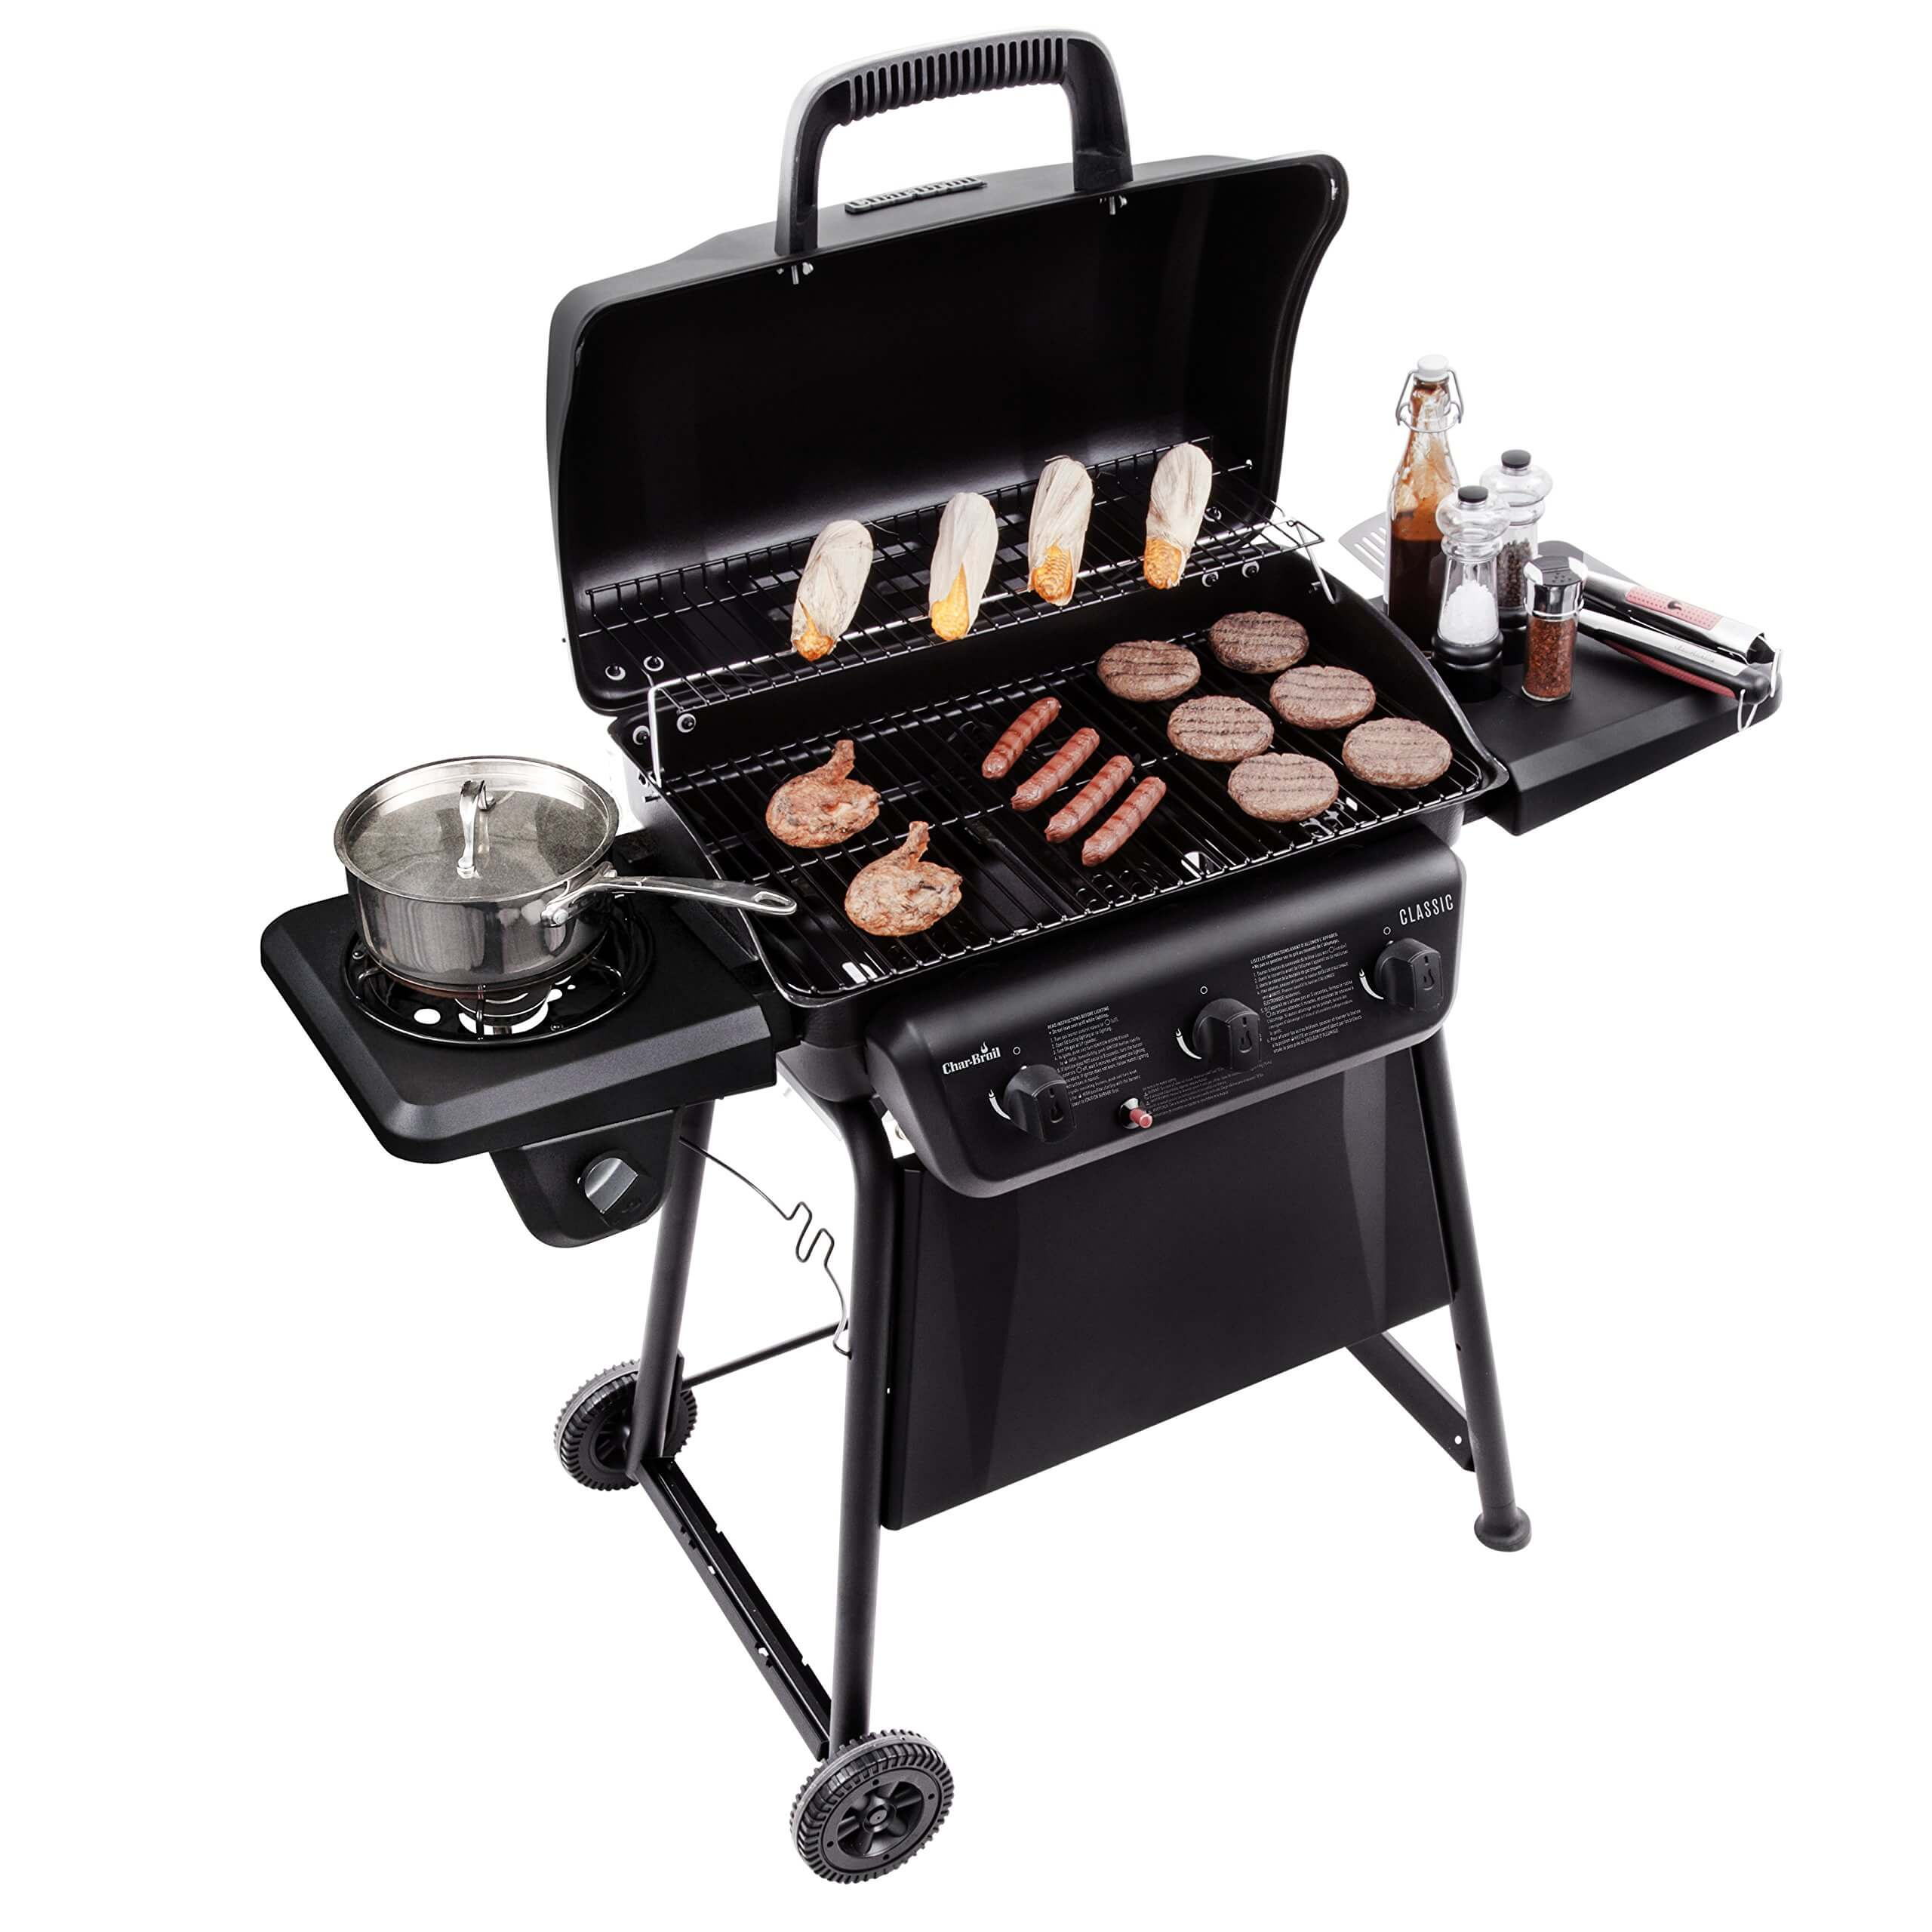 Best Gas Grill under $300 for Delicious and Easy Home Grilling. char-broil performance 475, char-broil performance 475 gas grill, best charcoal grill under 300, best charcoal grills under 300, best propane smoker under 300, best propane gas grills under $300